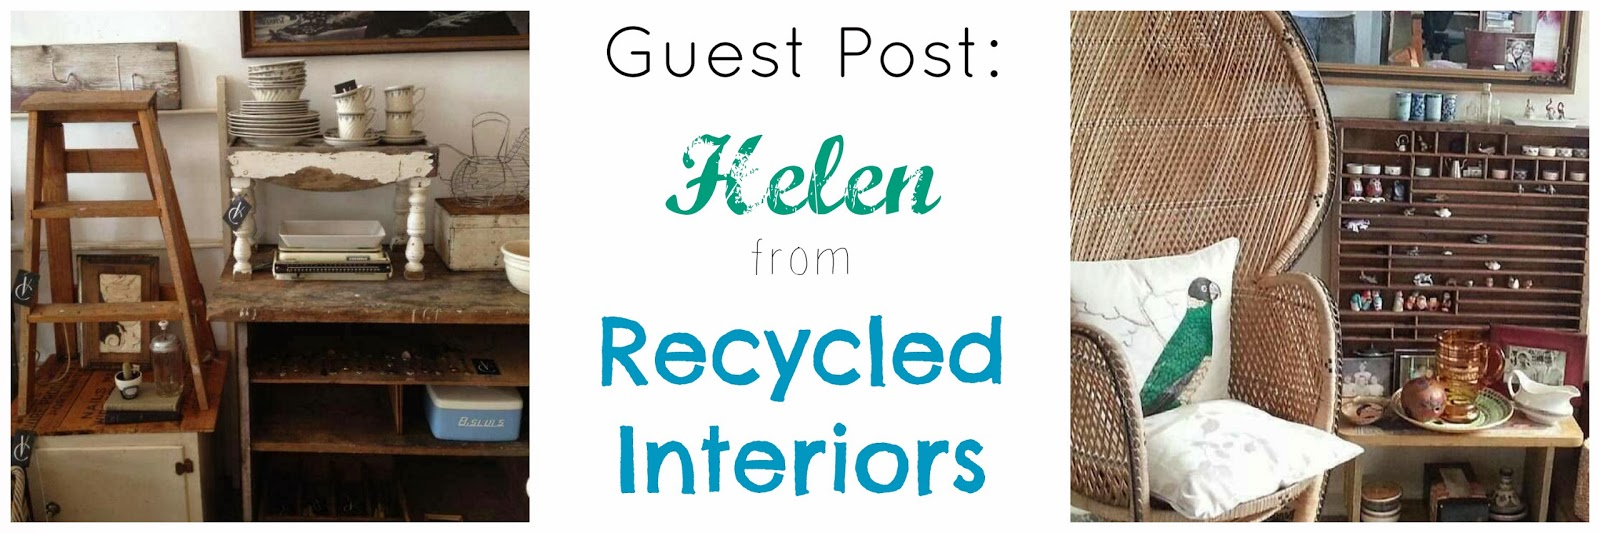 Chamomile and Peppermint Blog - Guest Post - Helen from Recycled Interiors